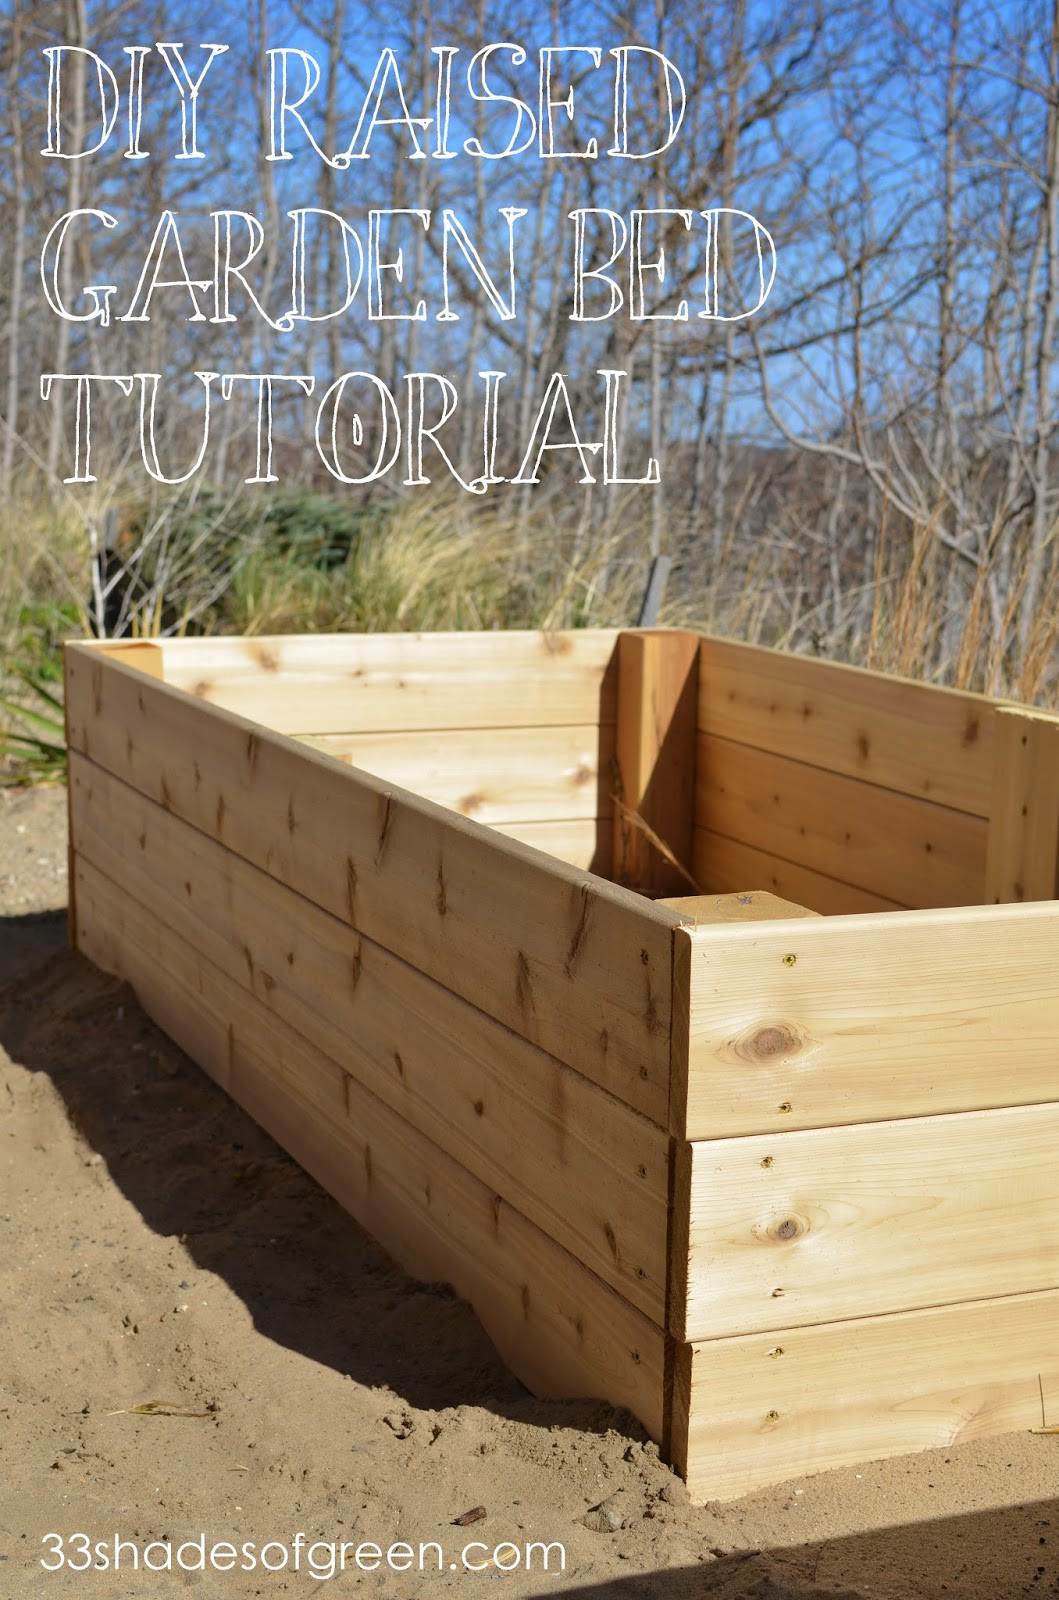 Best ideas about Cedar Raised Garden Beds DIY . Save or Pin 33 Shades of Green Easy DIY Raised Garden Bed Tutorial Now.